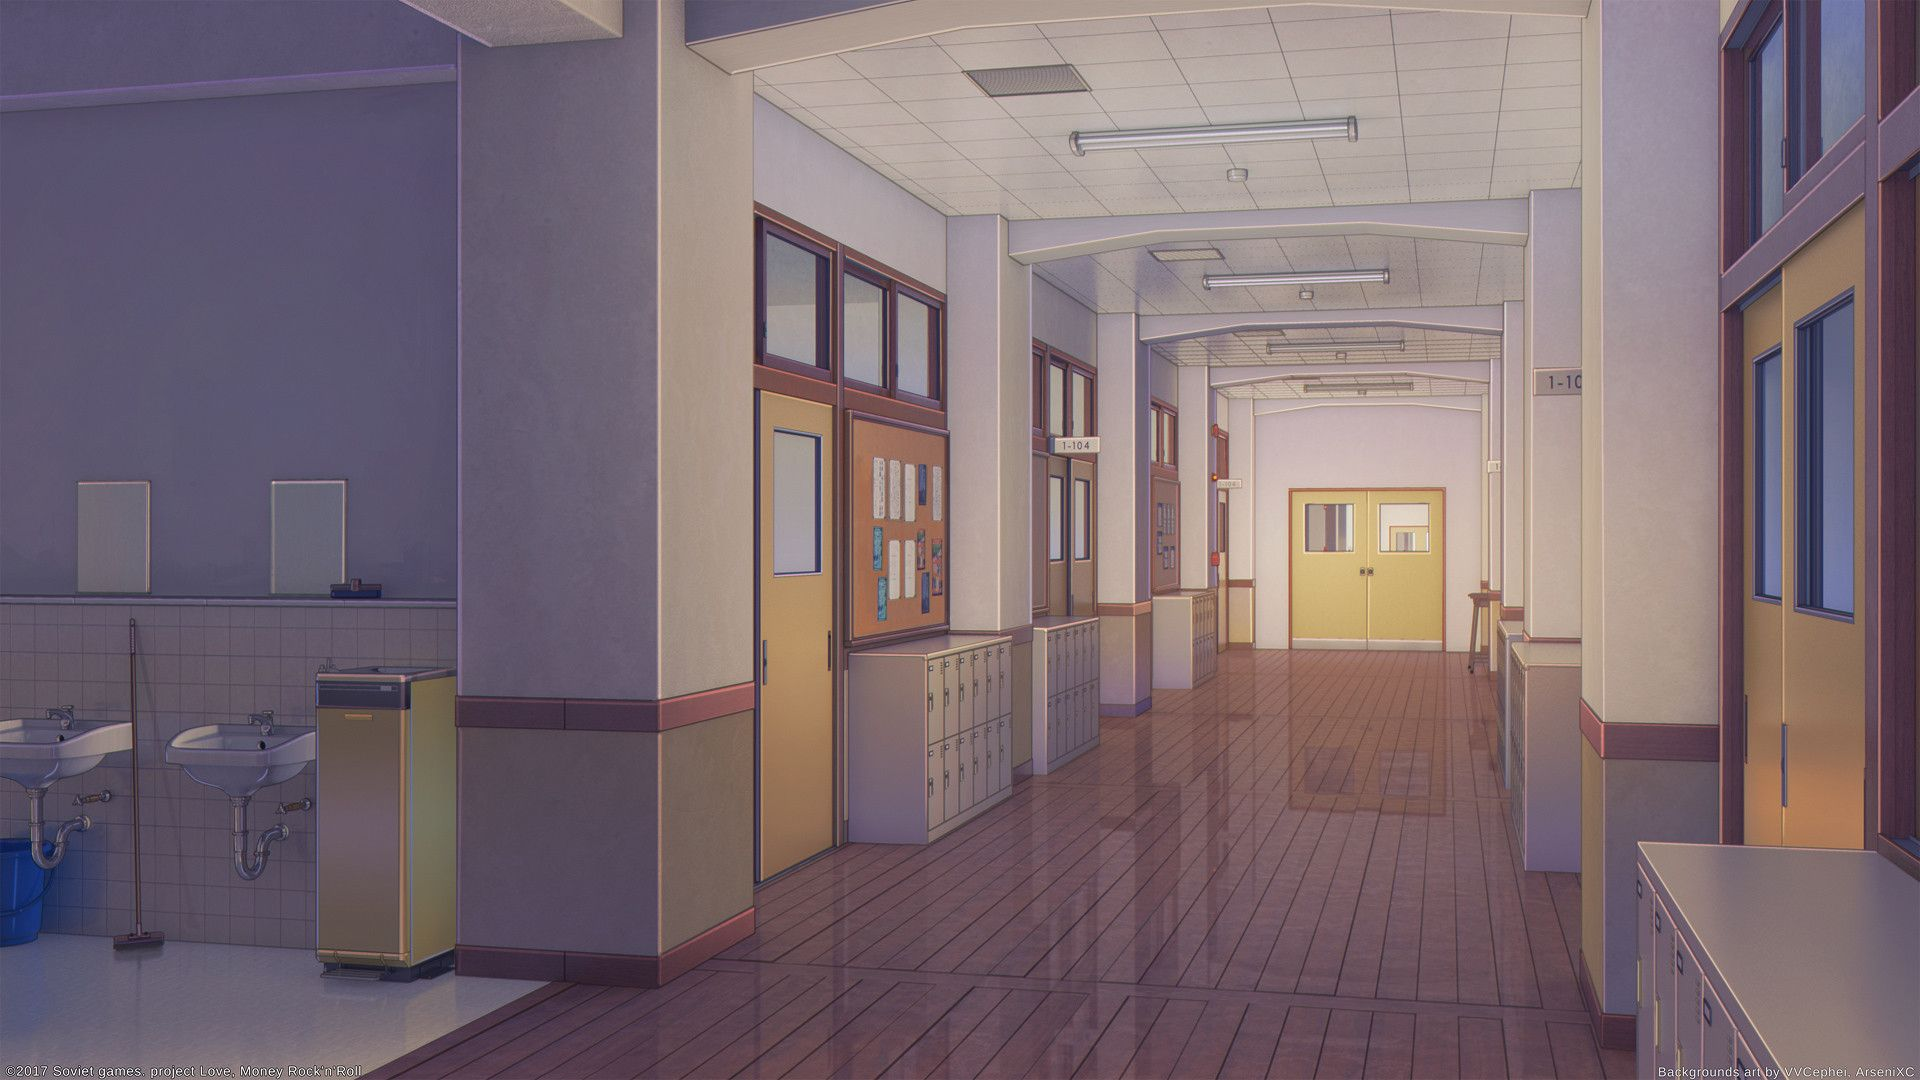 Artstation Classroom 2 Arseniy Chebynkin Anime Classroom Anime Backgrounds Wallpapers Anime Scenery